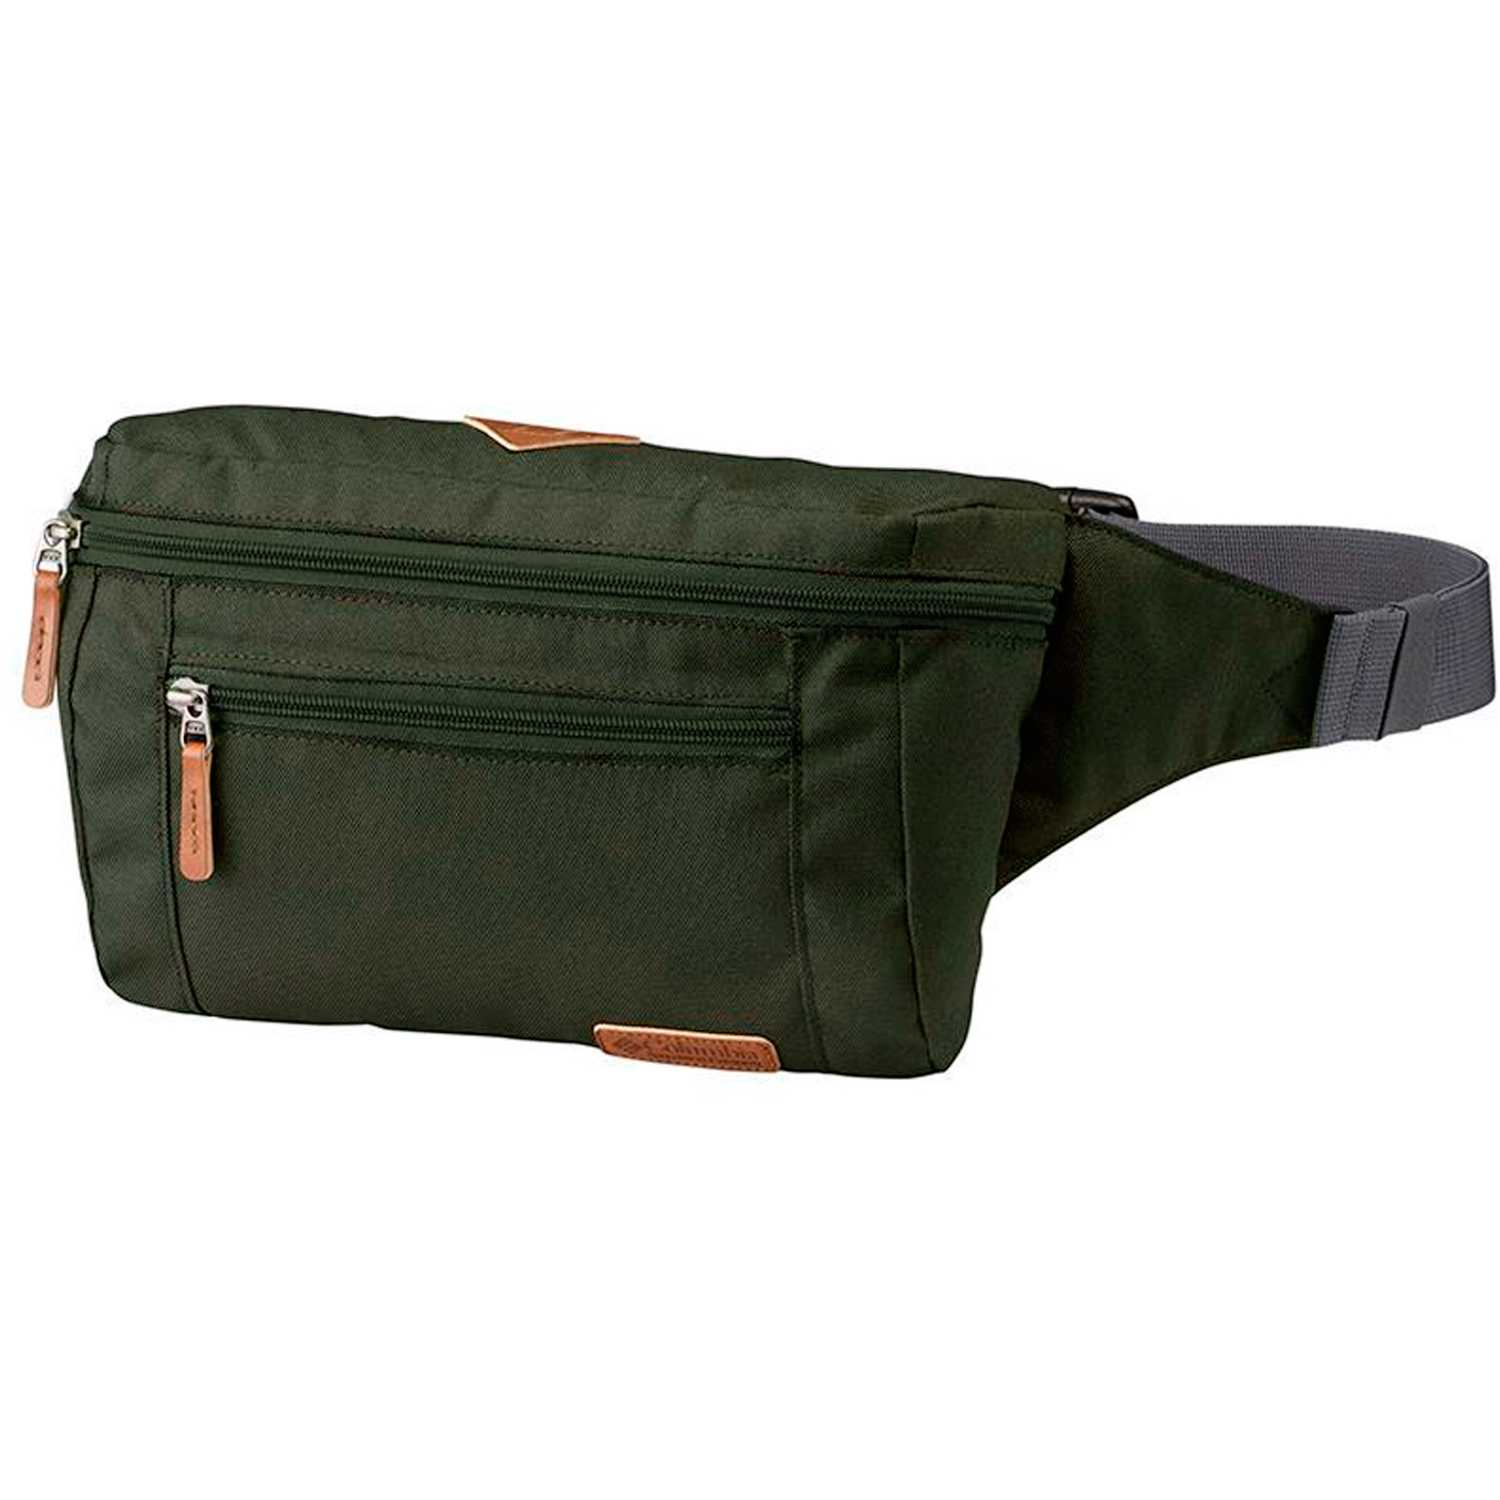 Columbia outdoor lumbar bag Olivo Canguros